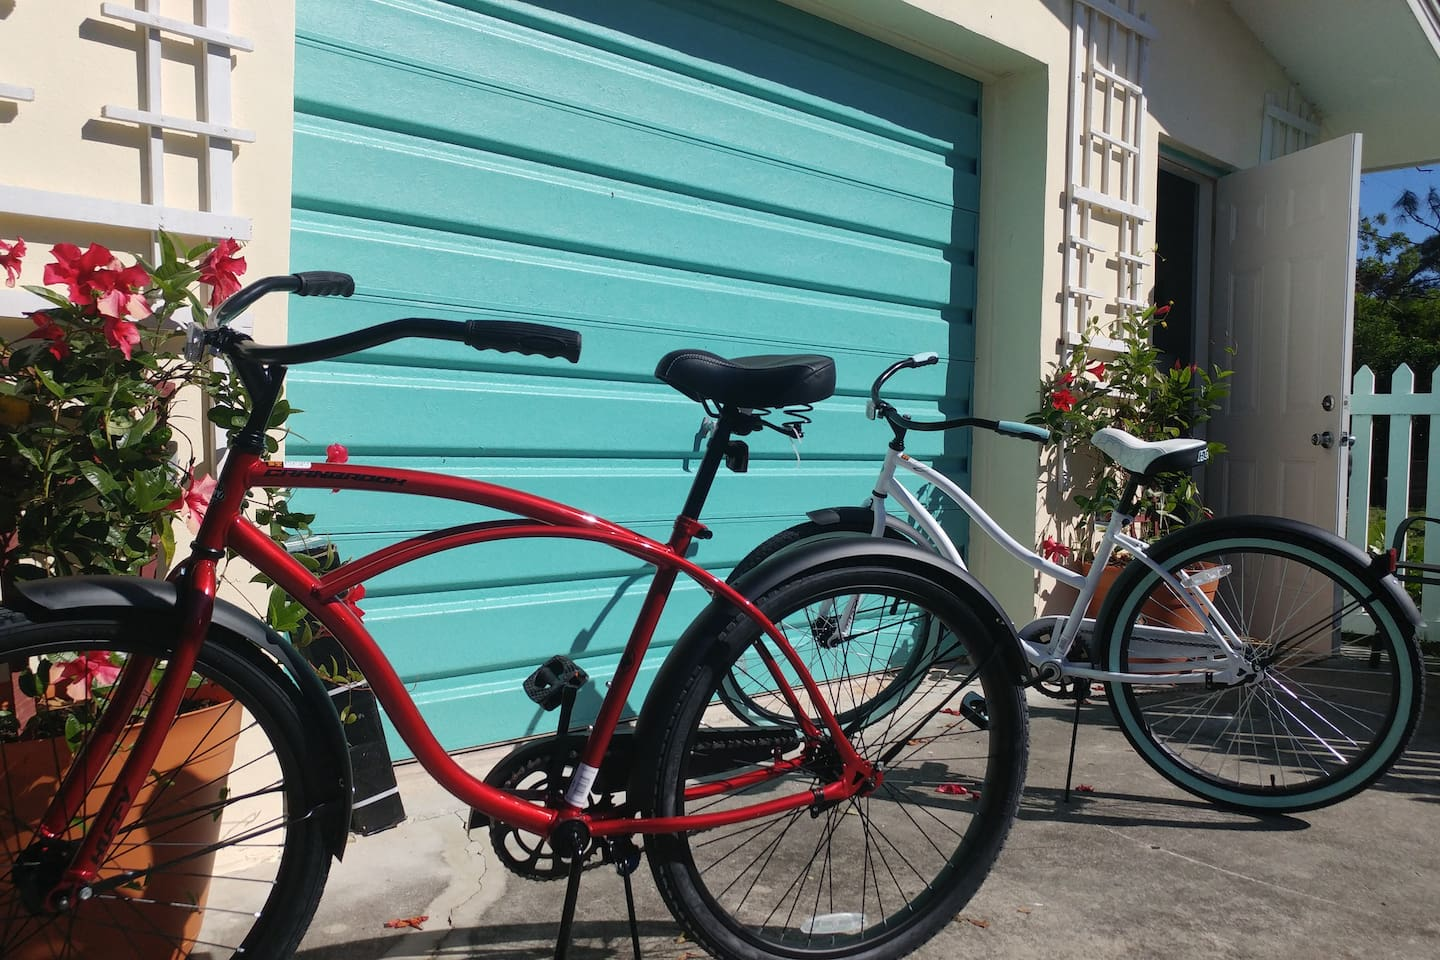 2 Beach cruisers for your stay and quick 10 minute ride to beach